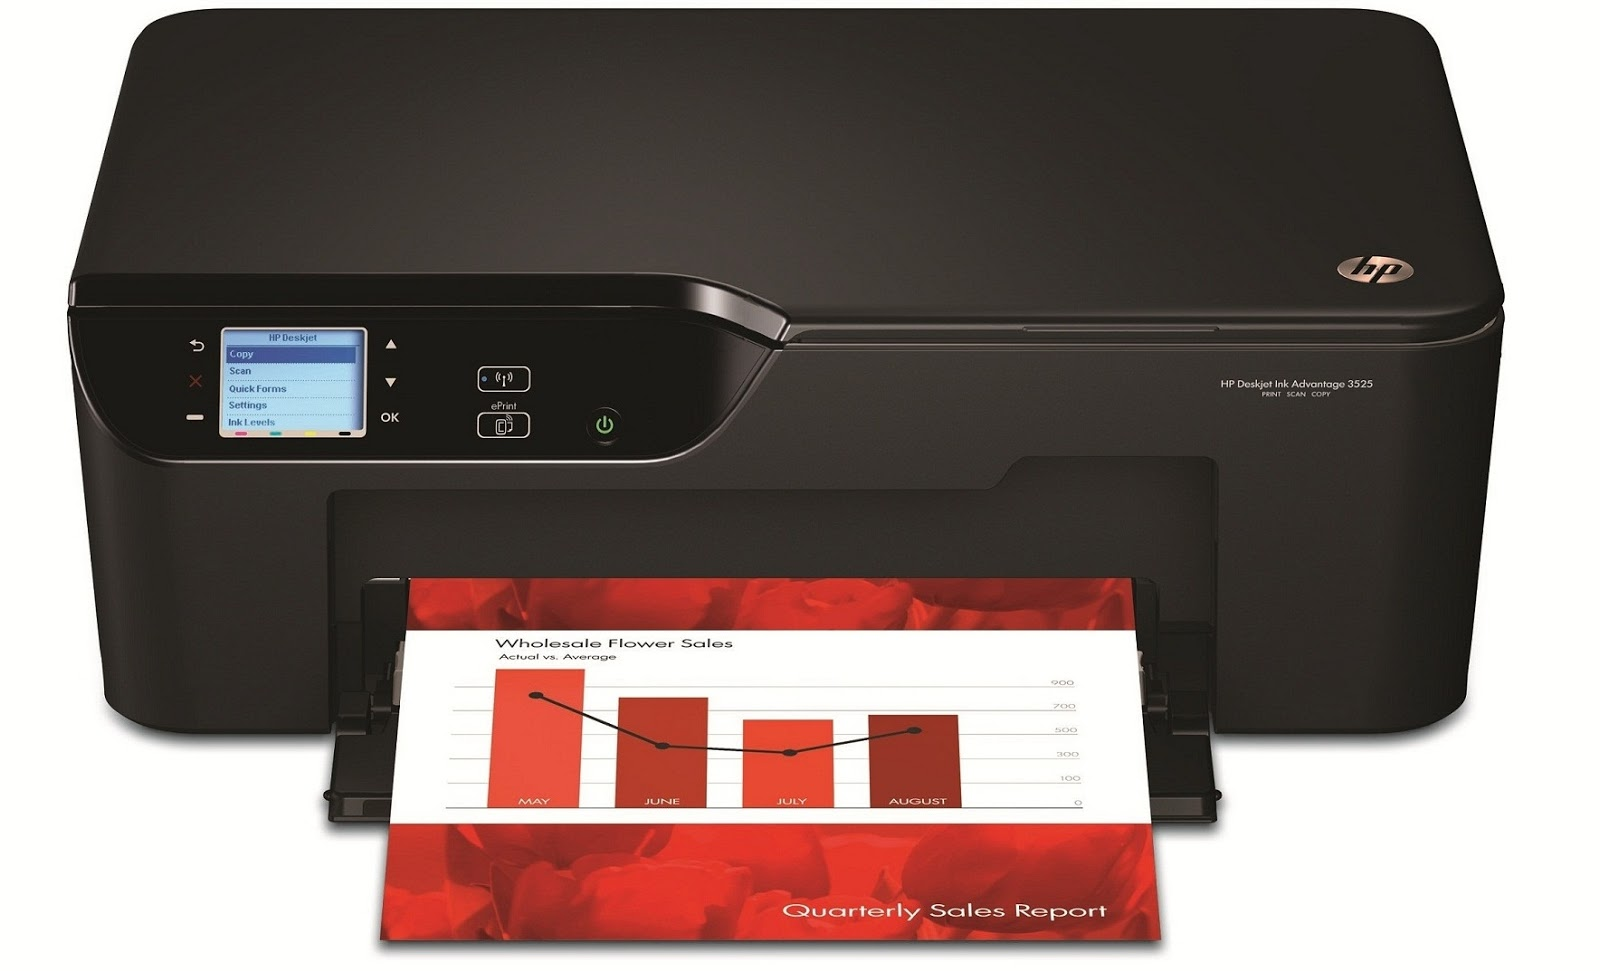 HP Deskjet 3525 Ink Advantage e All in One